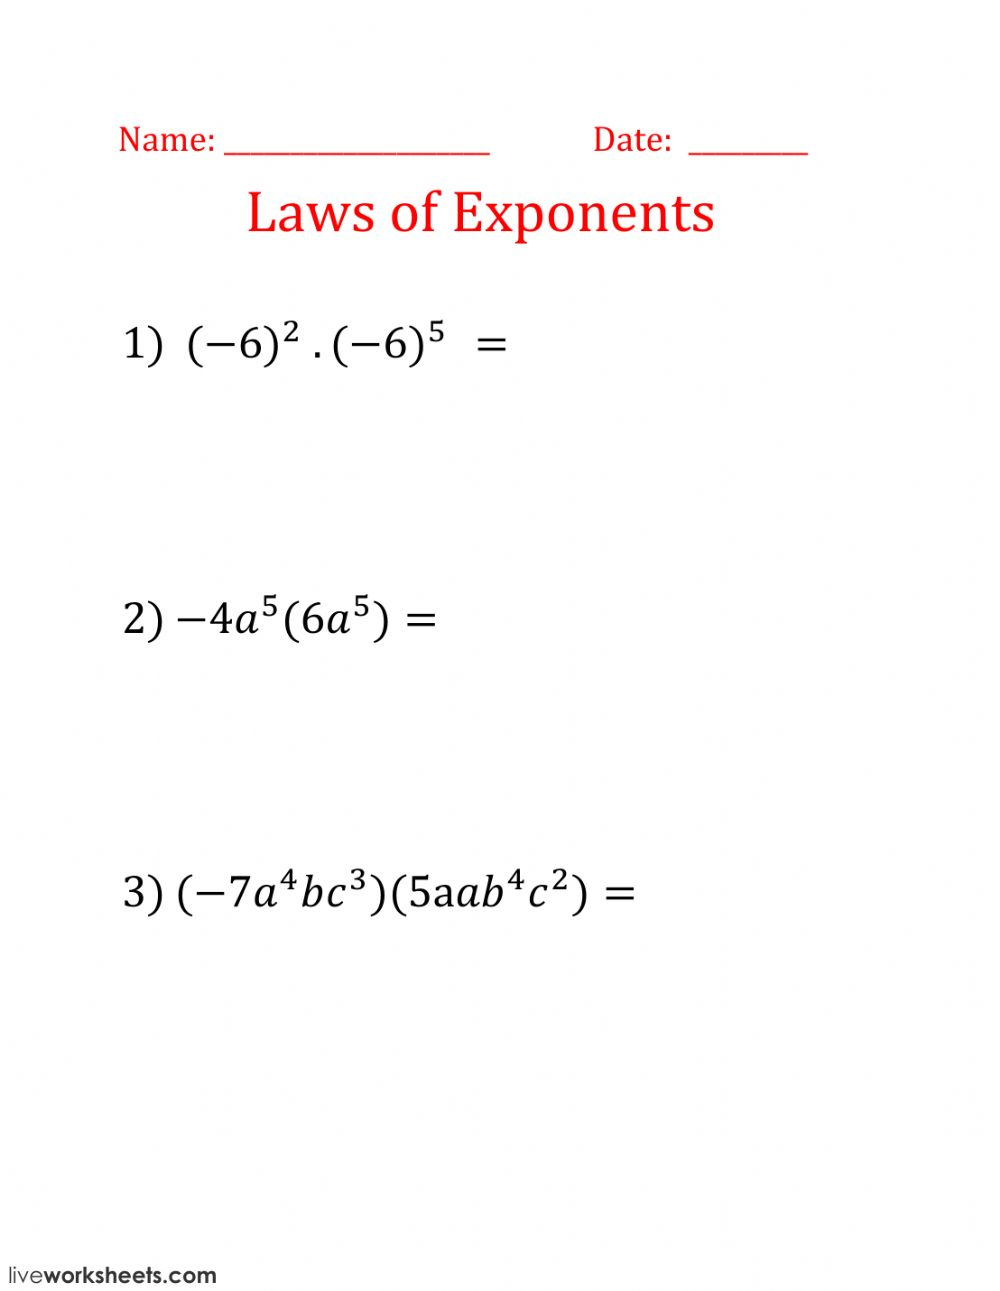 Worksheets Laws Of Exponents Worksheets laws of exponents interactive worksheet